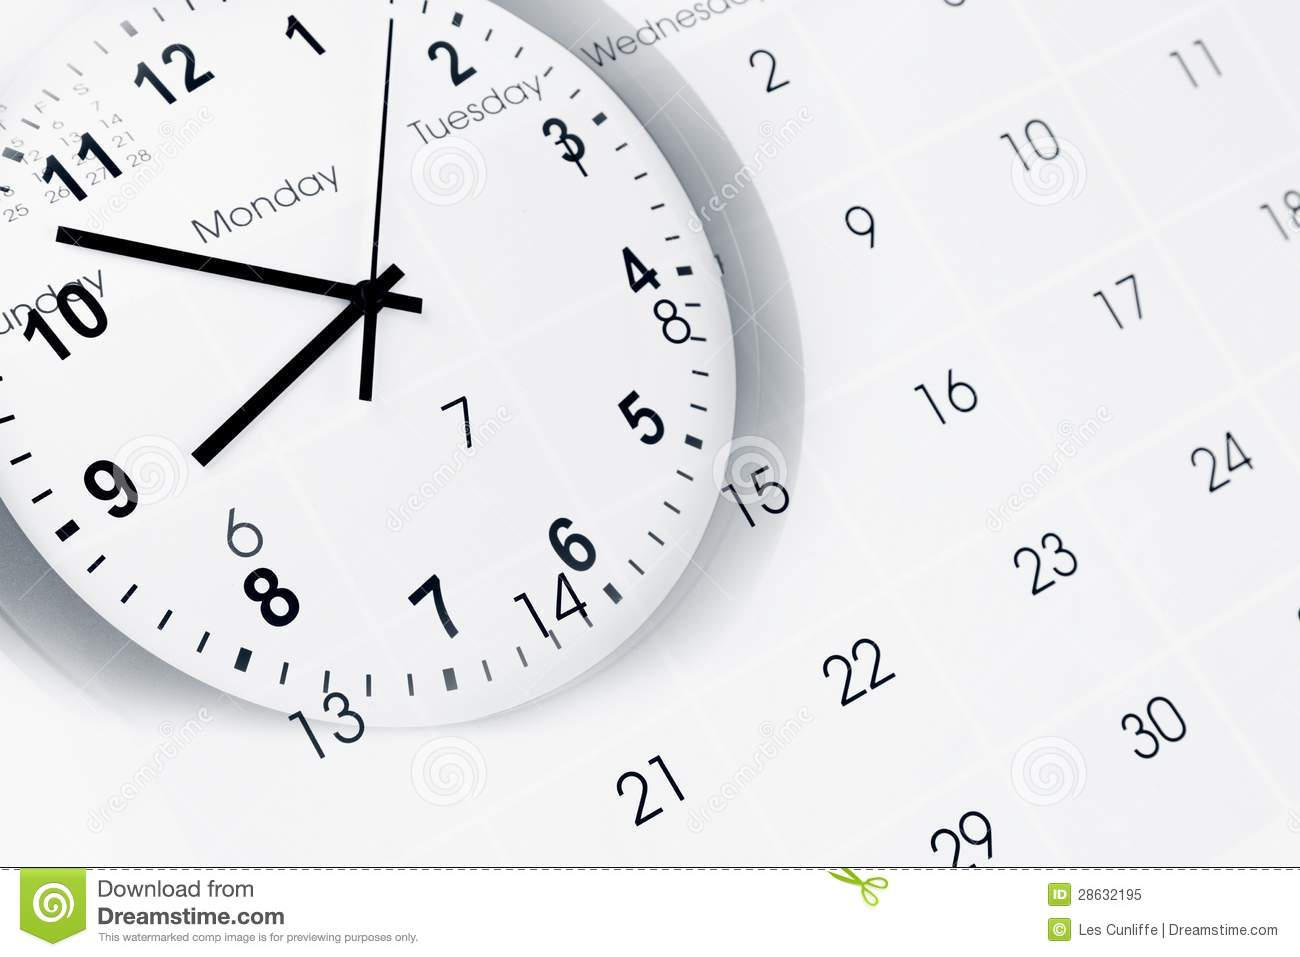 Calendar Wallpaper With Clock : Clock and calendar stock image of annual accurate